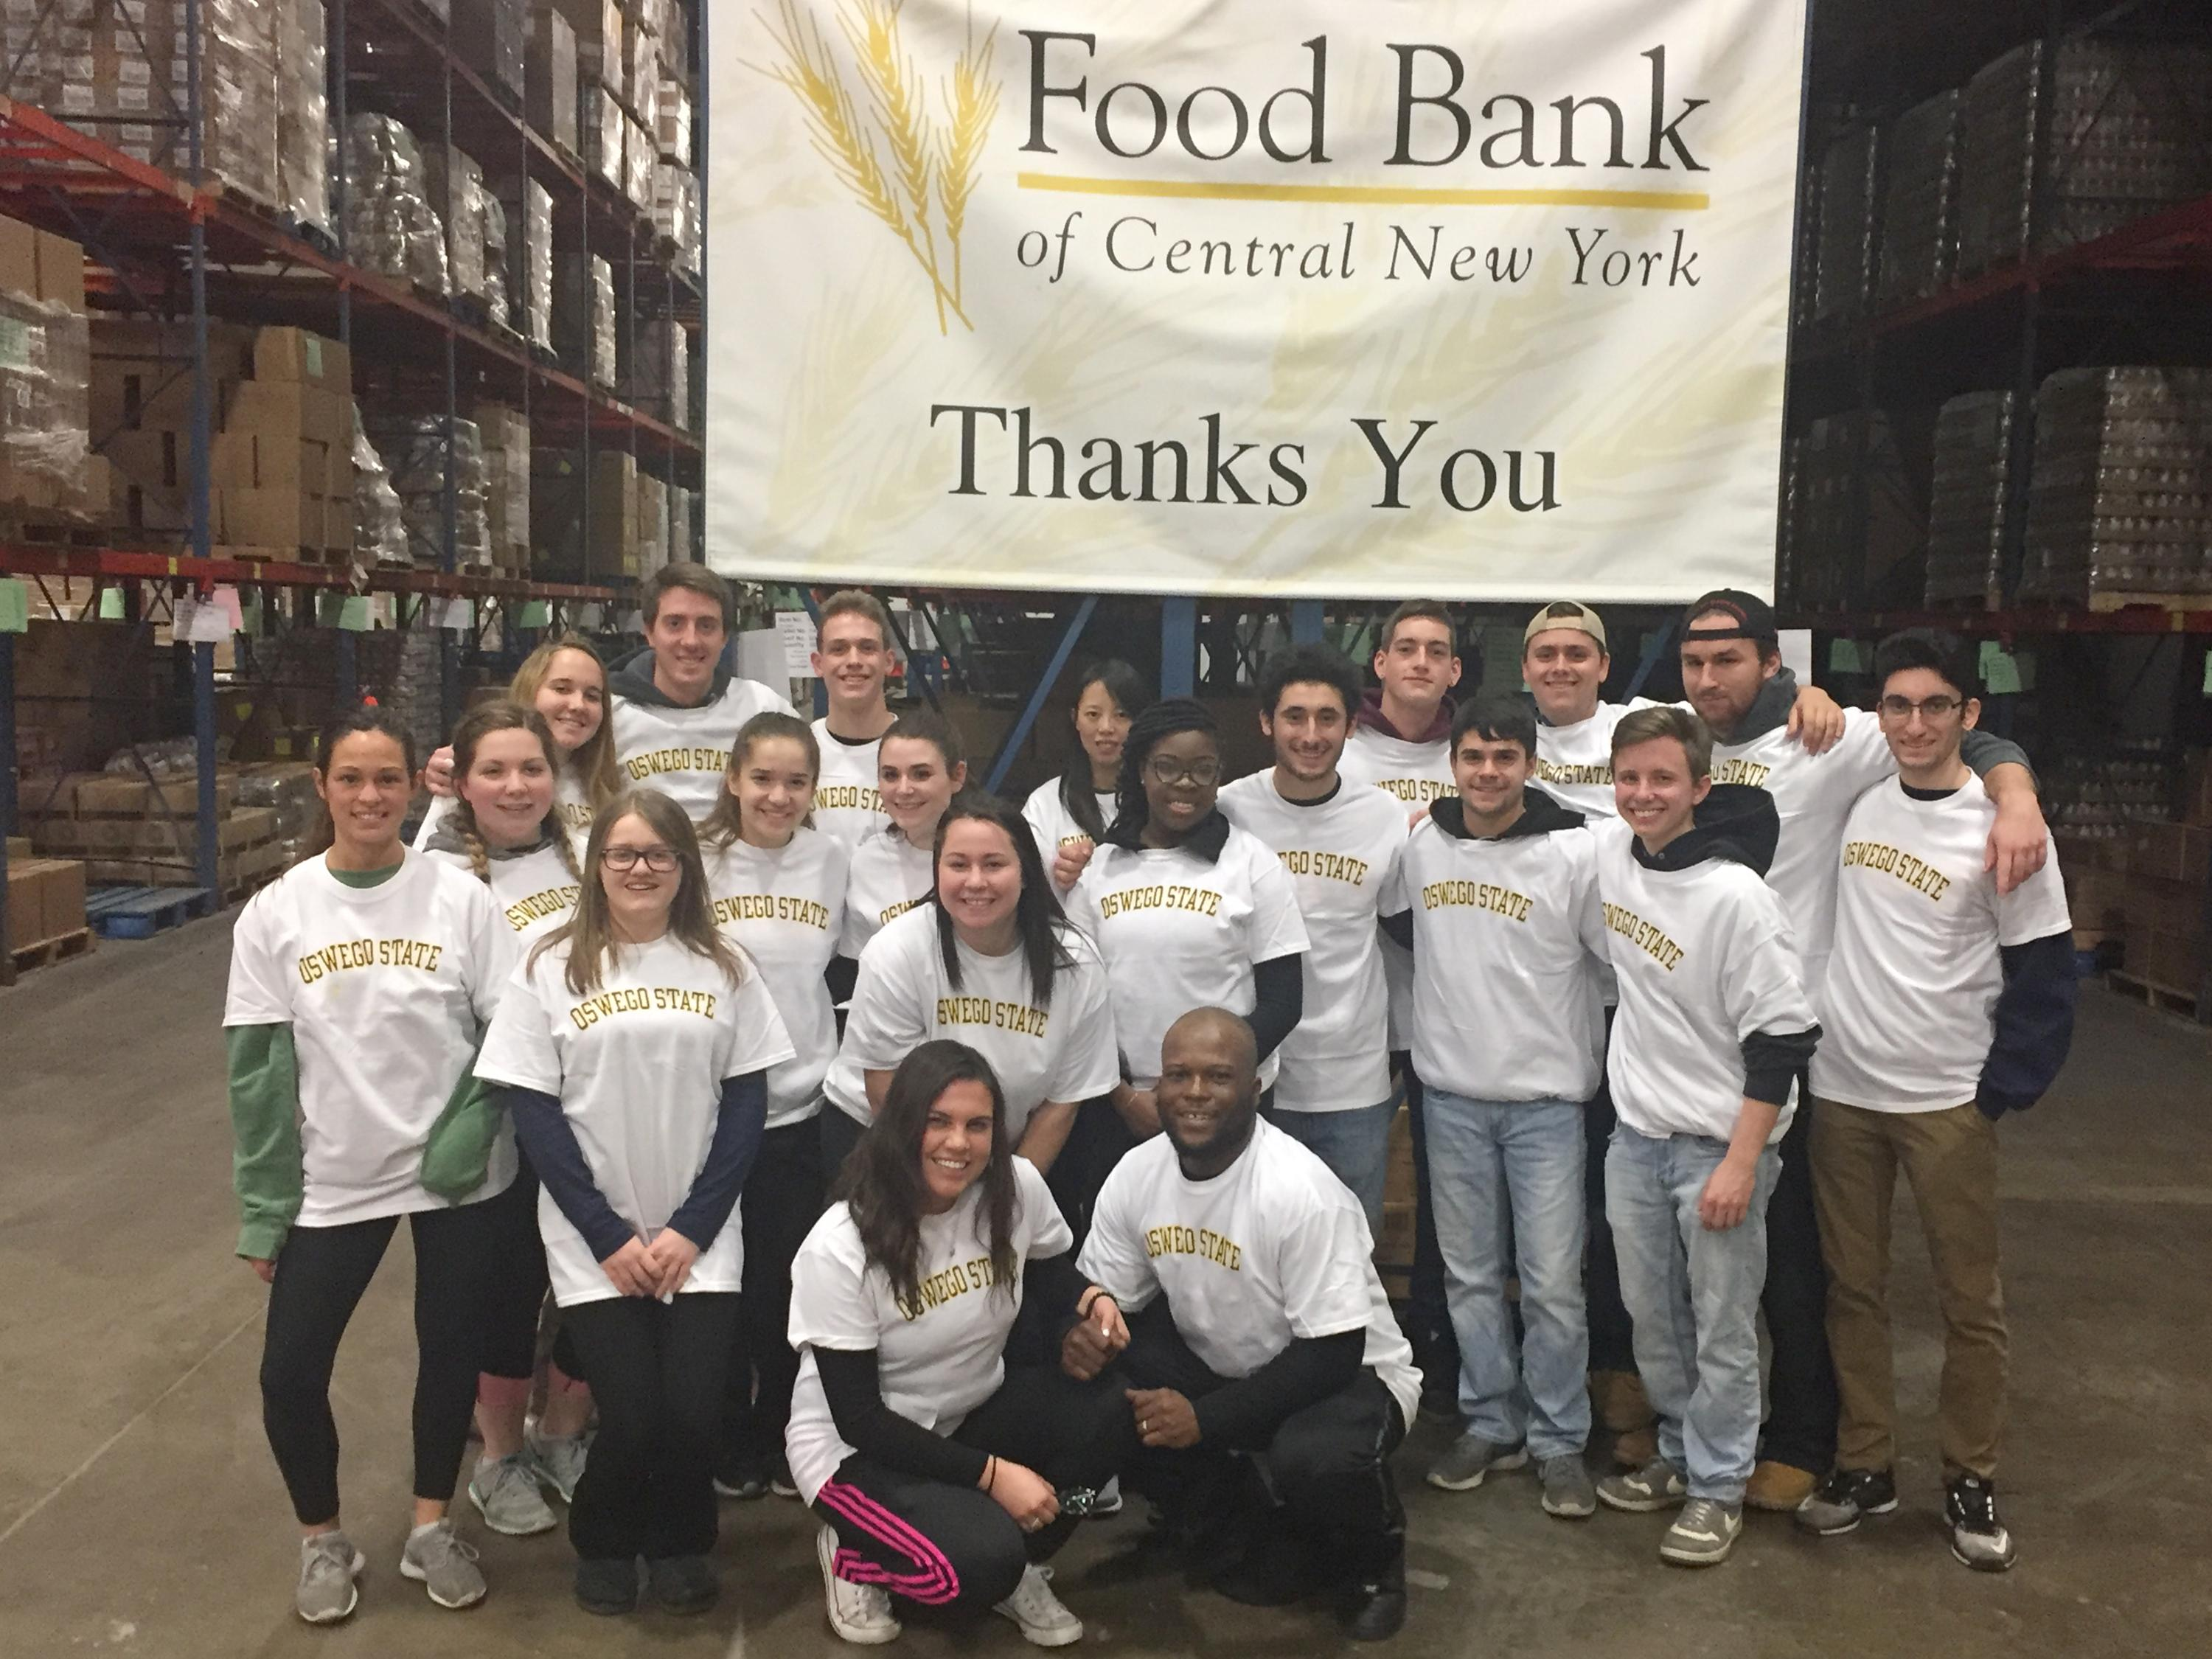 SUNY Oswego students support Food Bank